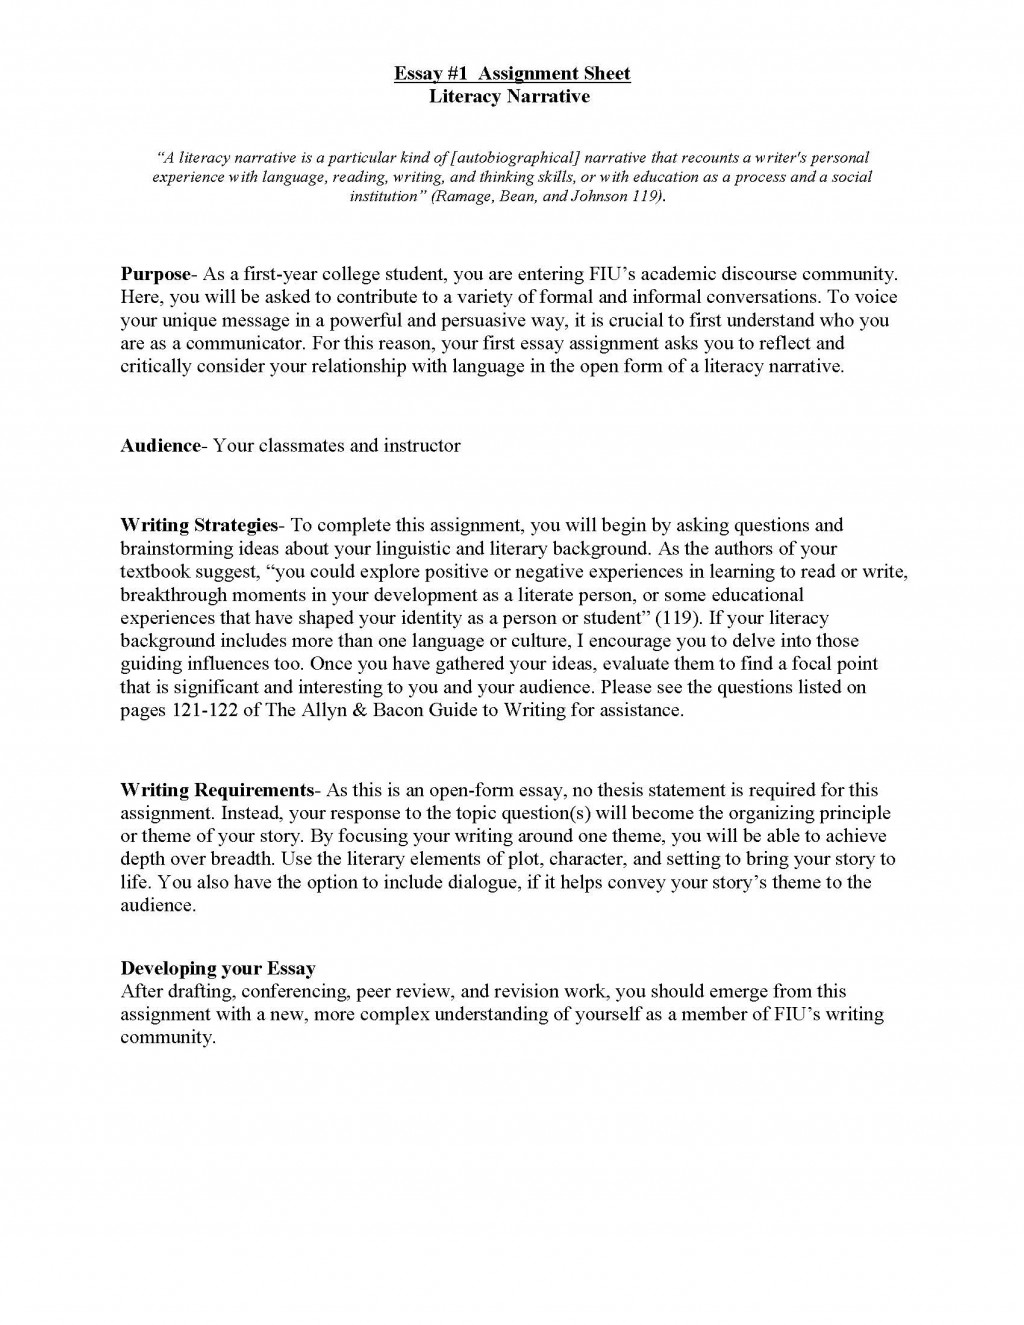 010 How To Write Personal Narrative Essay For College Literacy Unit Assignment Spring 2012 Page 1 Fascinating A Large